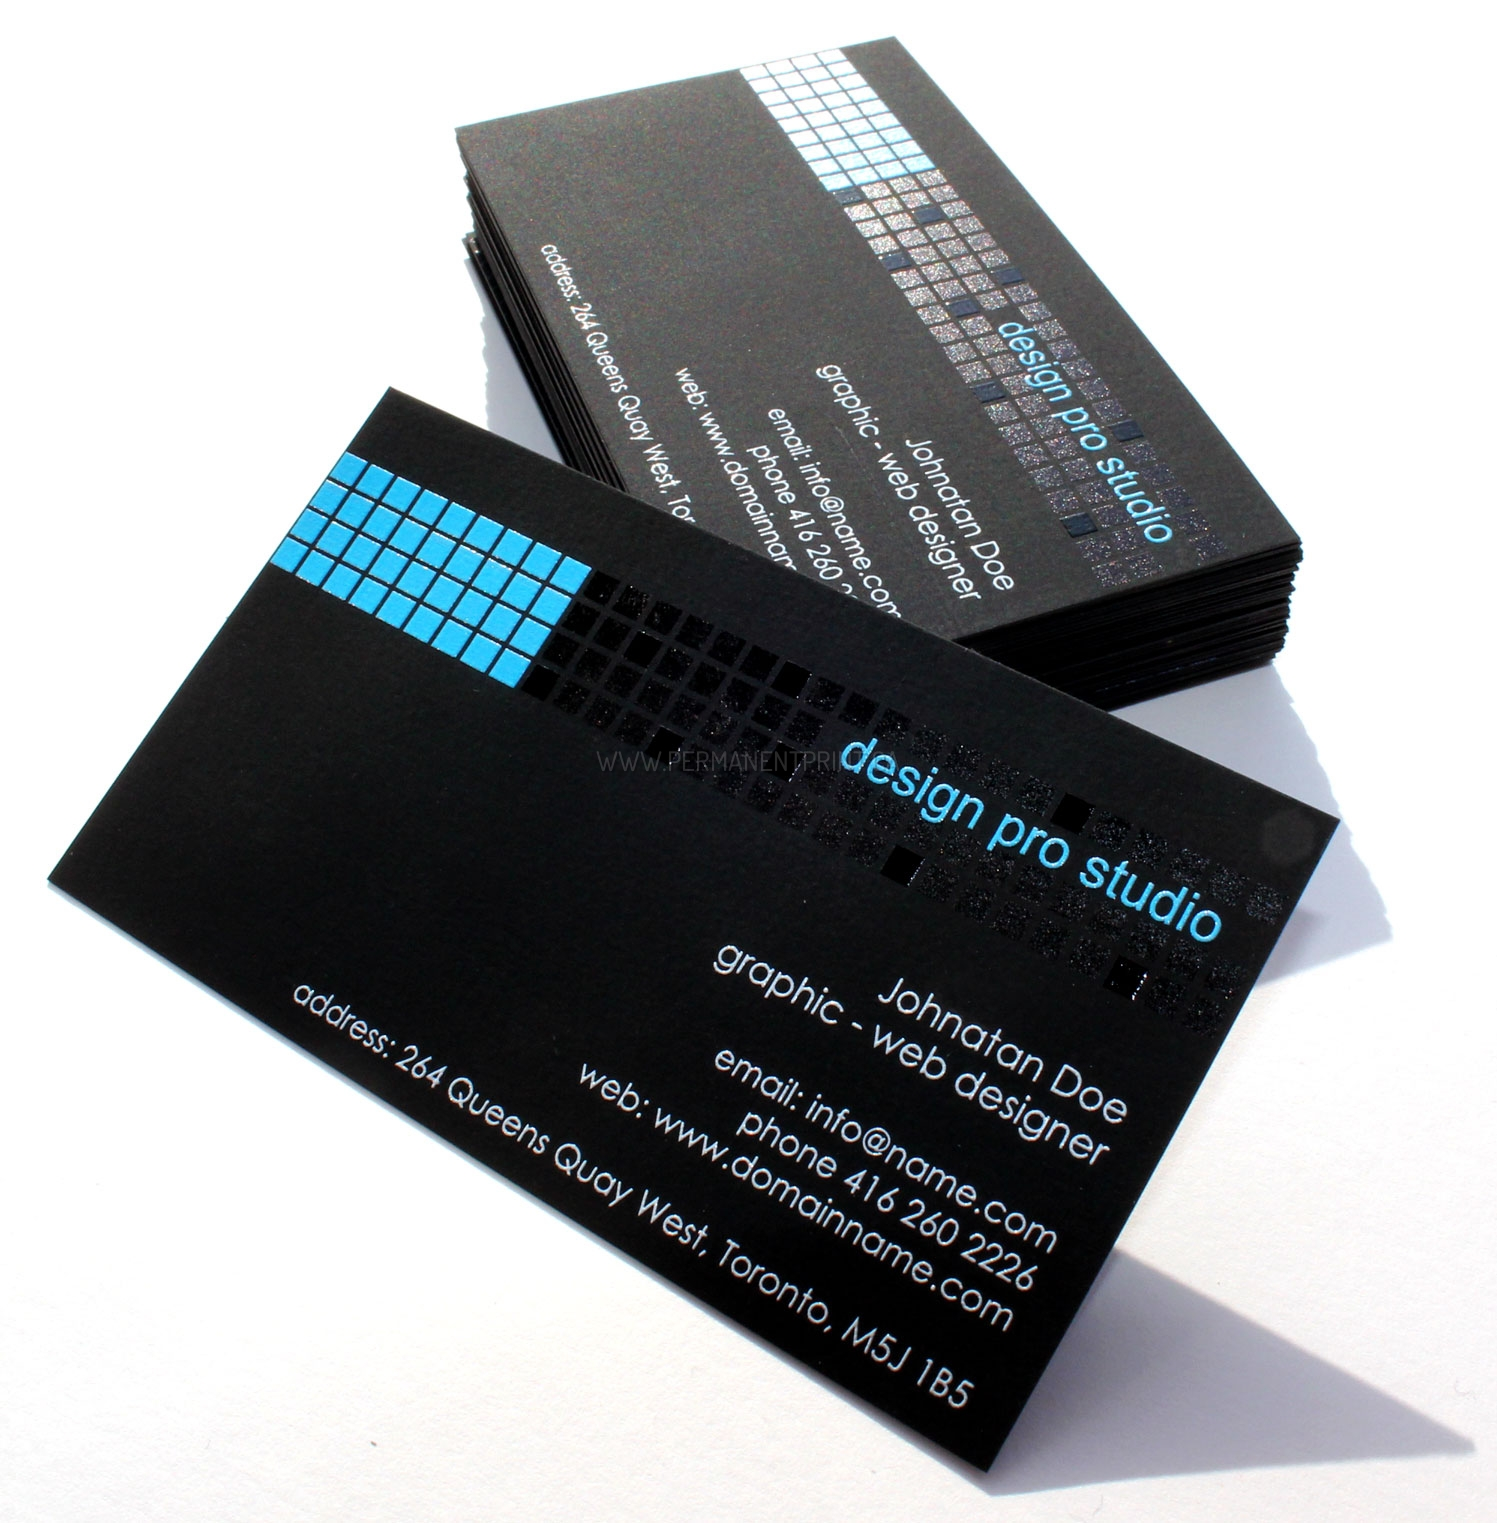 Unique Business Cards Archives - PERMANENT PRINT